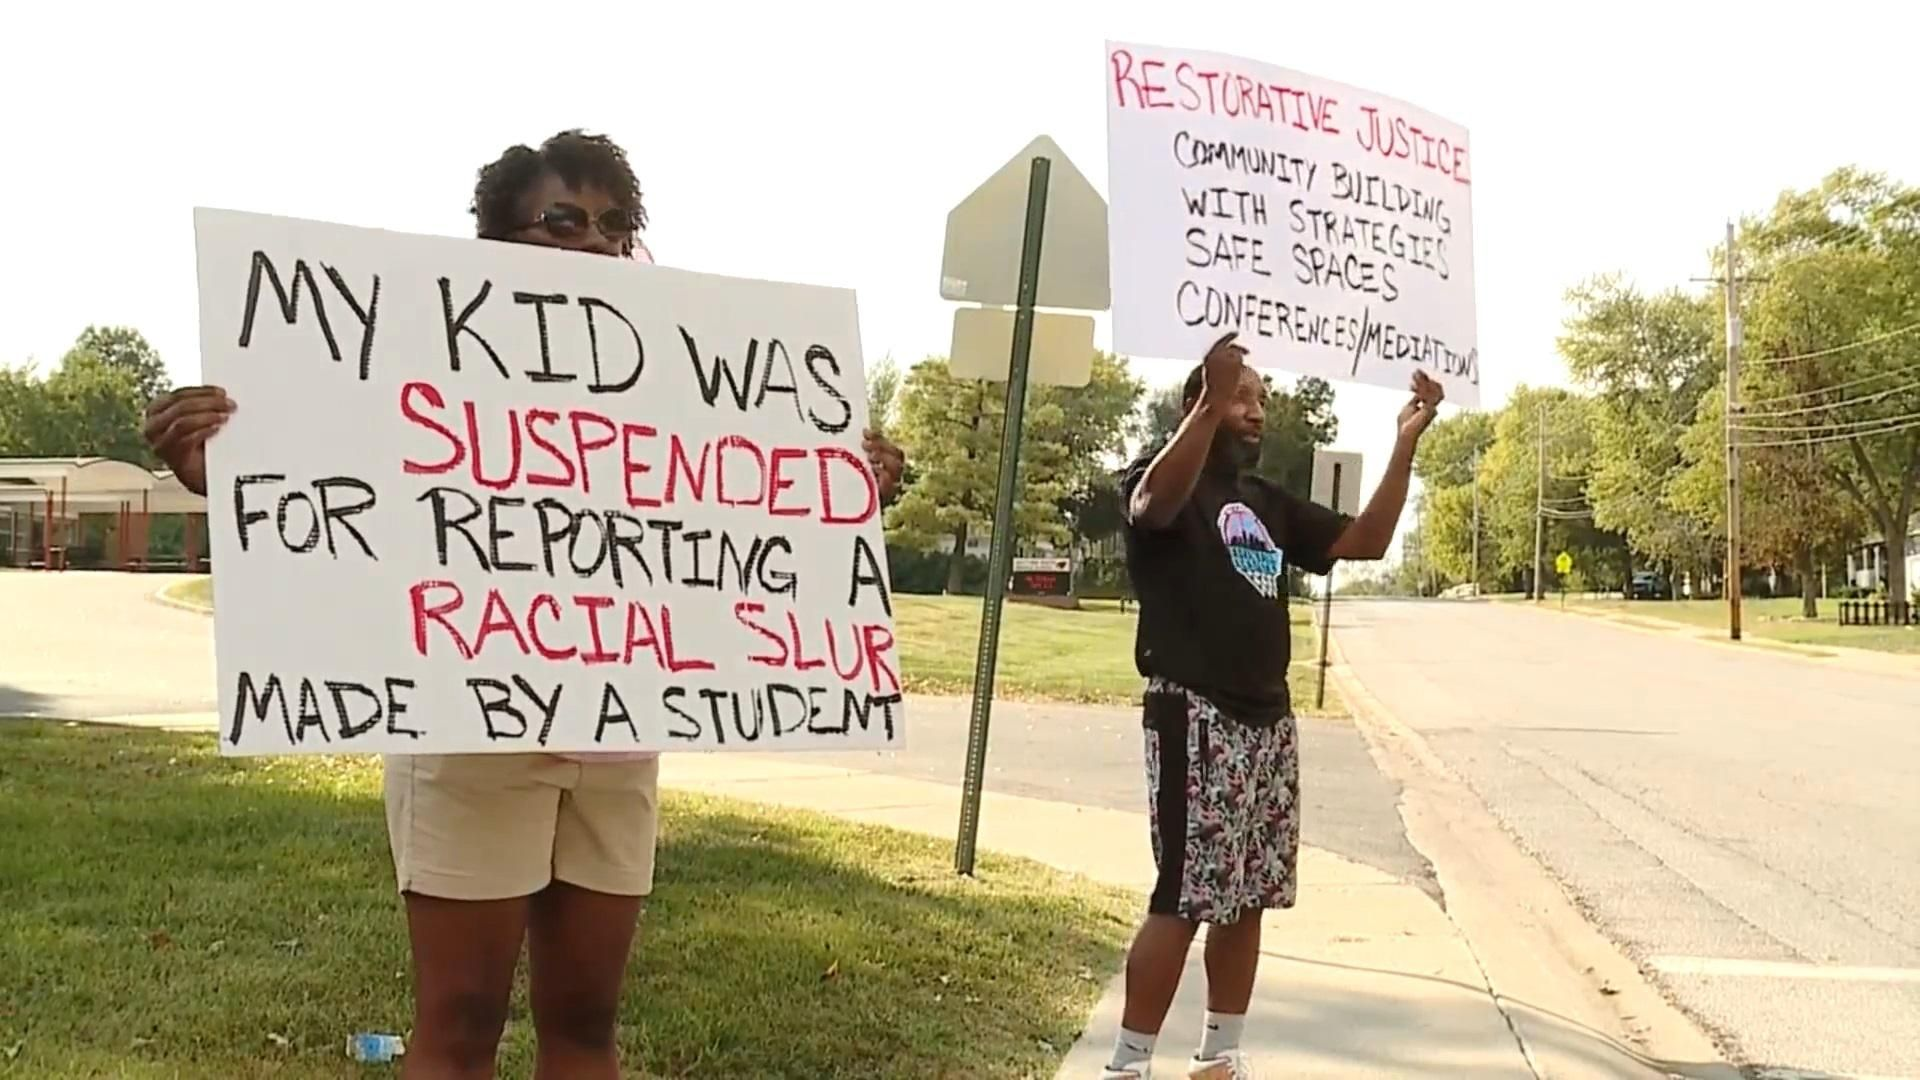 Black parents say school suspended their daughter for 'stirring things up' by complaining about a racial slur